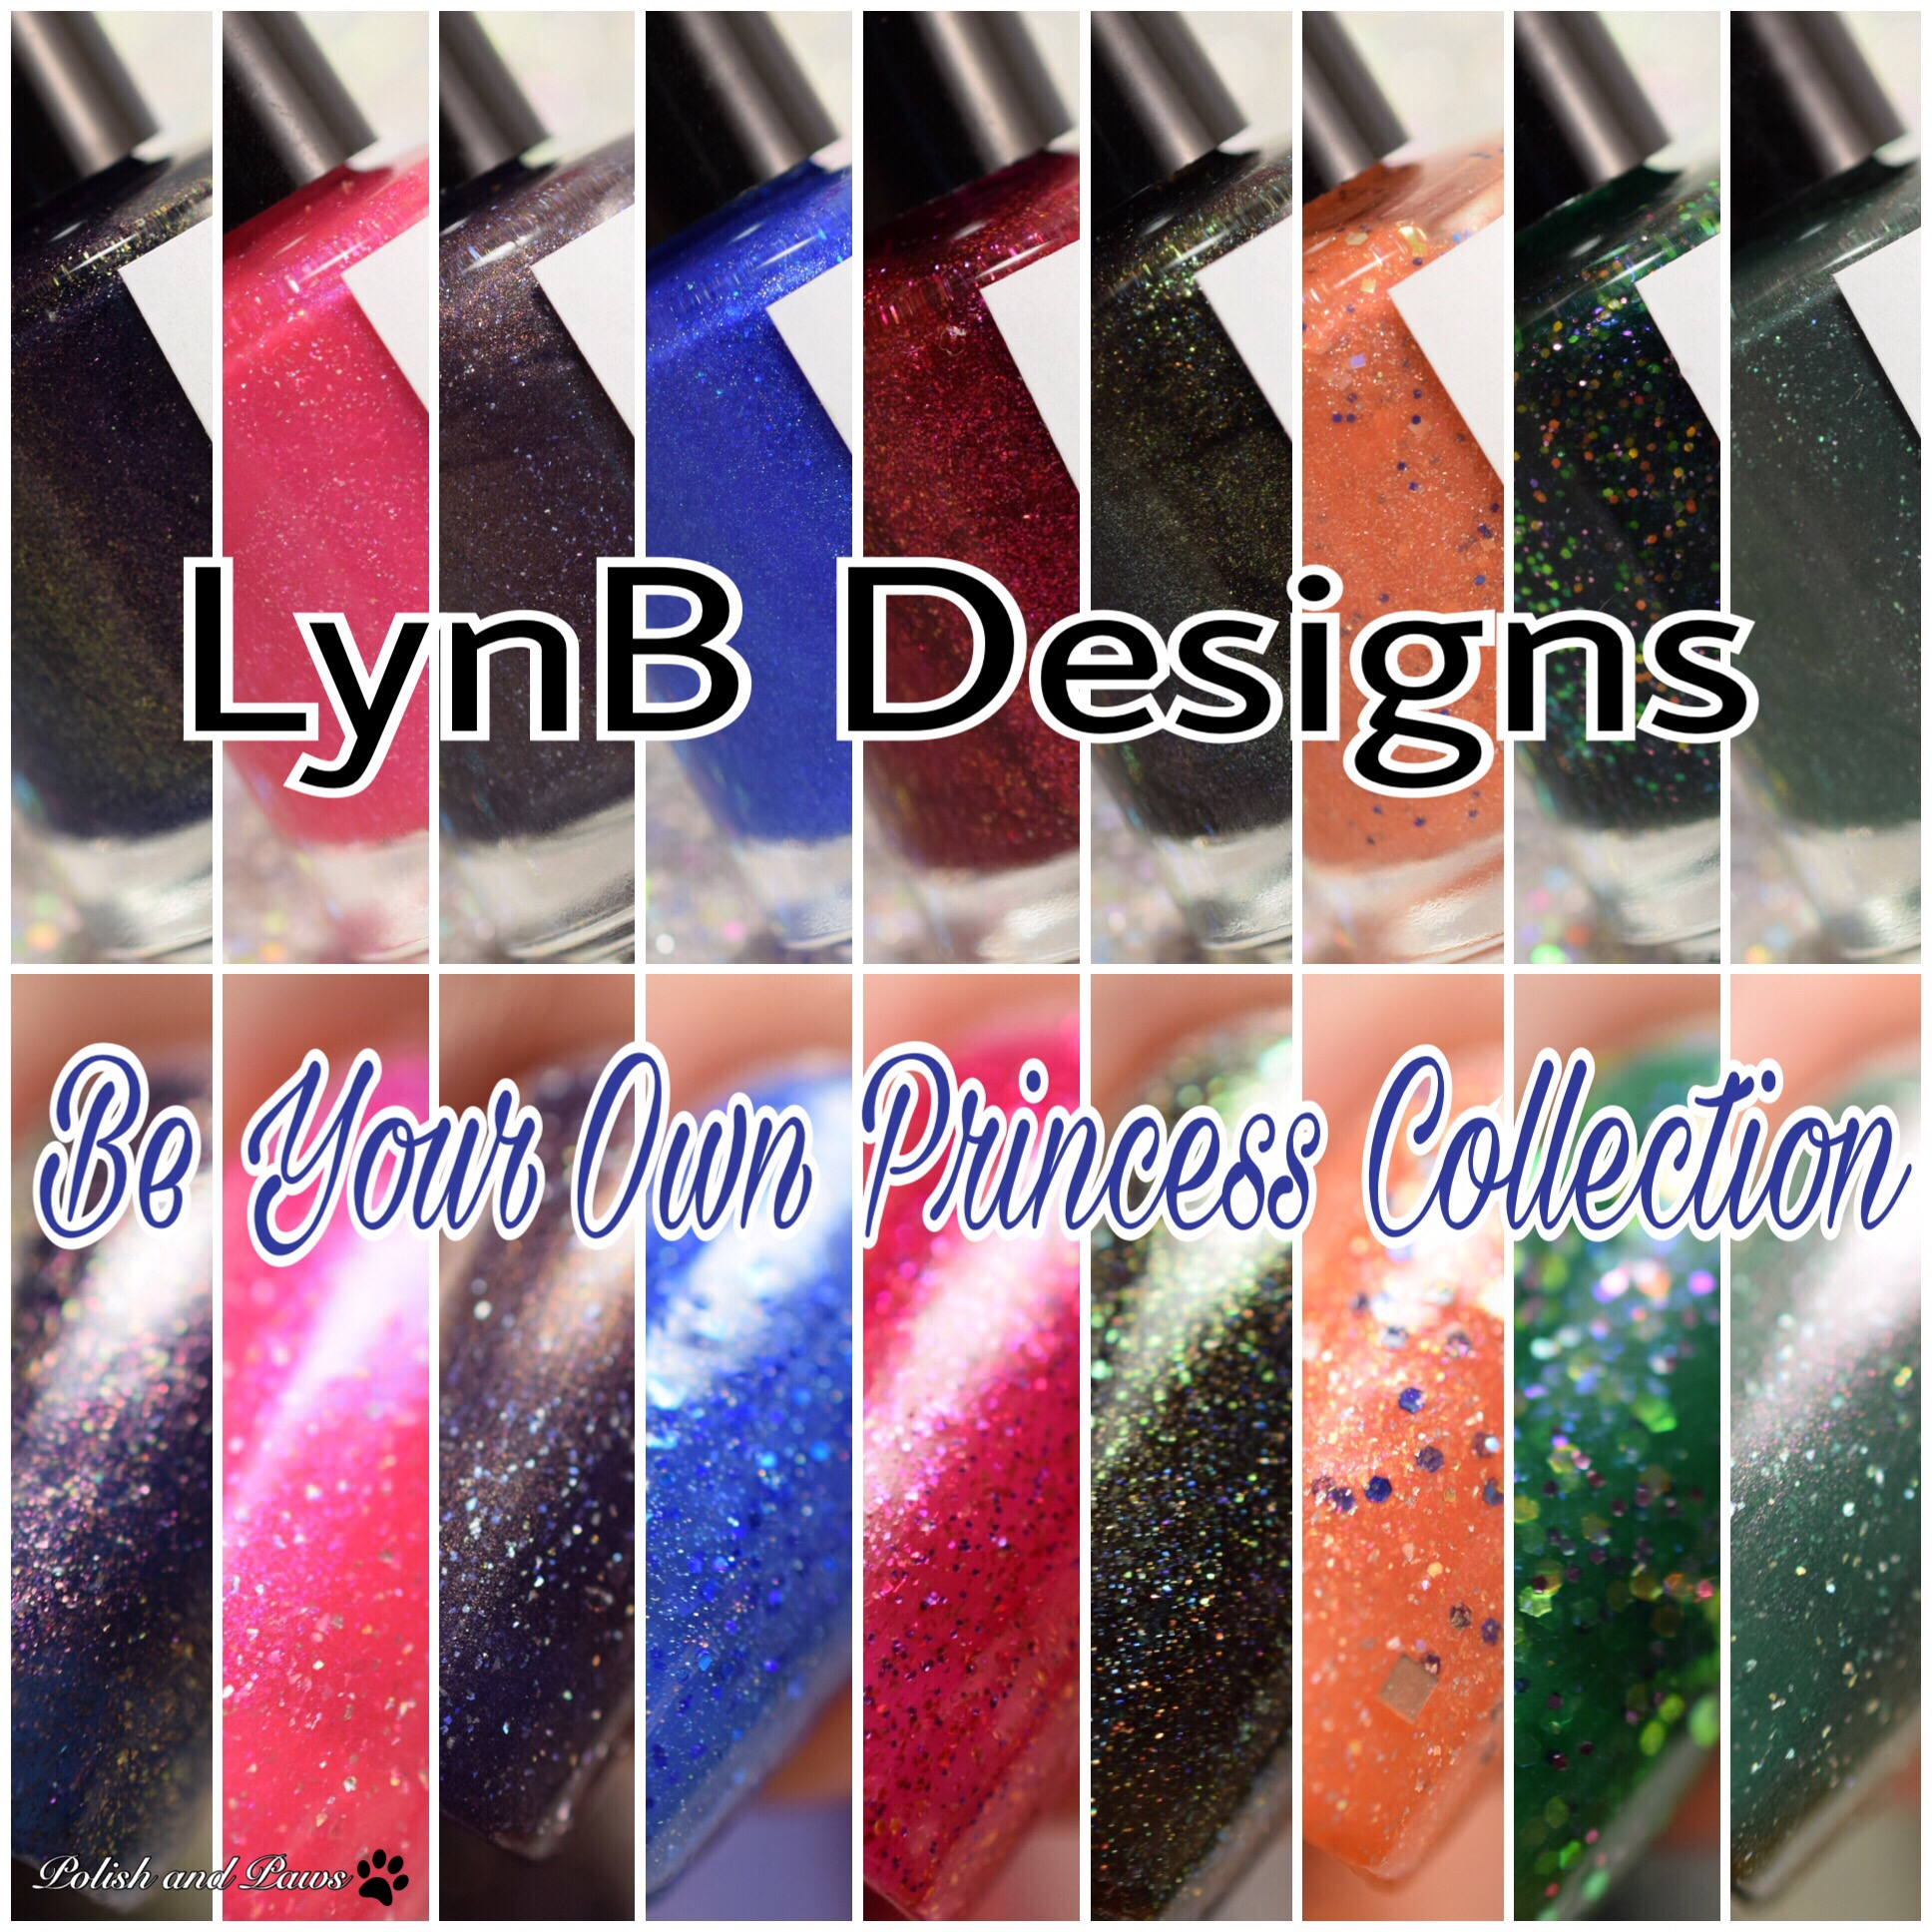 LynB Designs Be Your Own Princess Collection